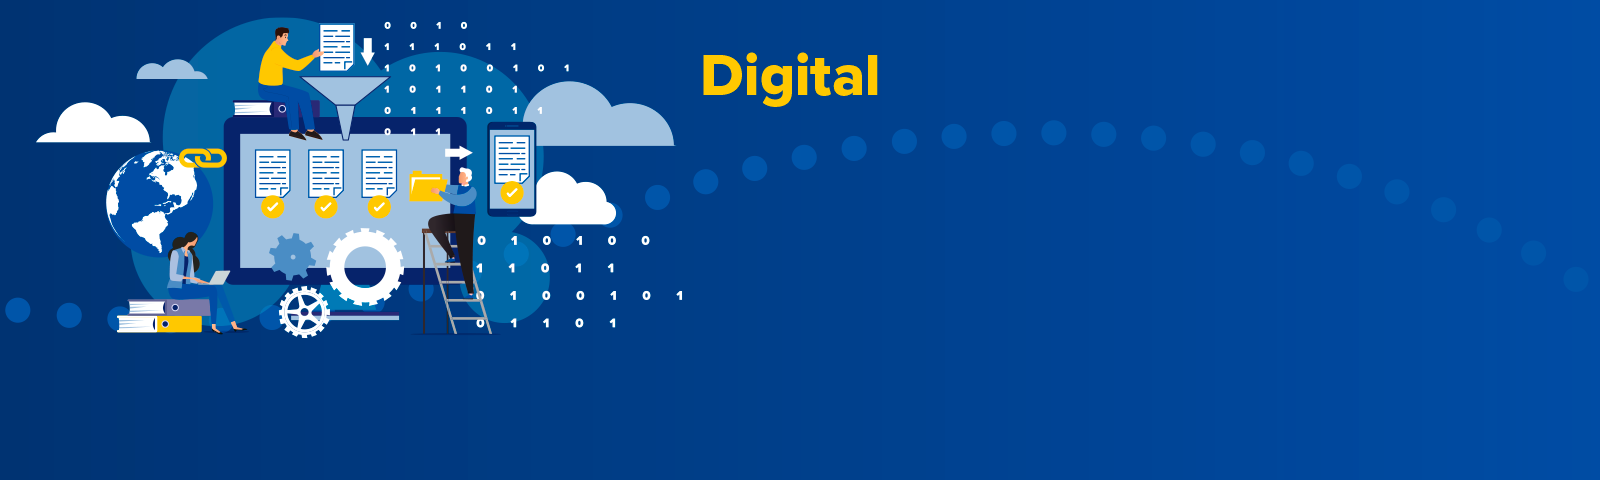 Digital Transformation - SAVE THE DATE – AGENDA is coming